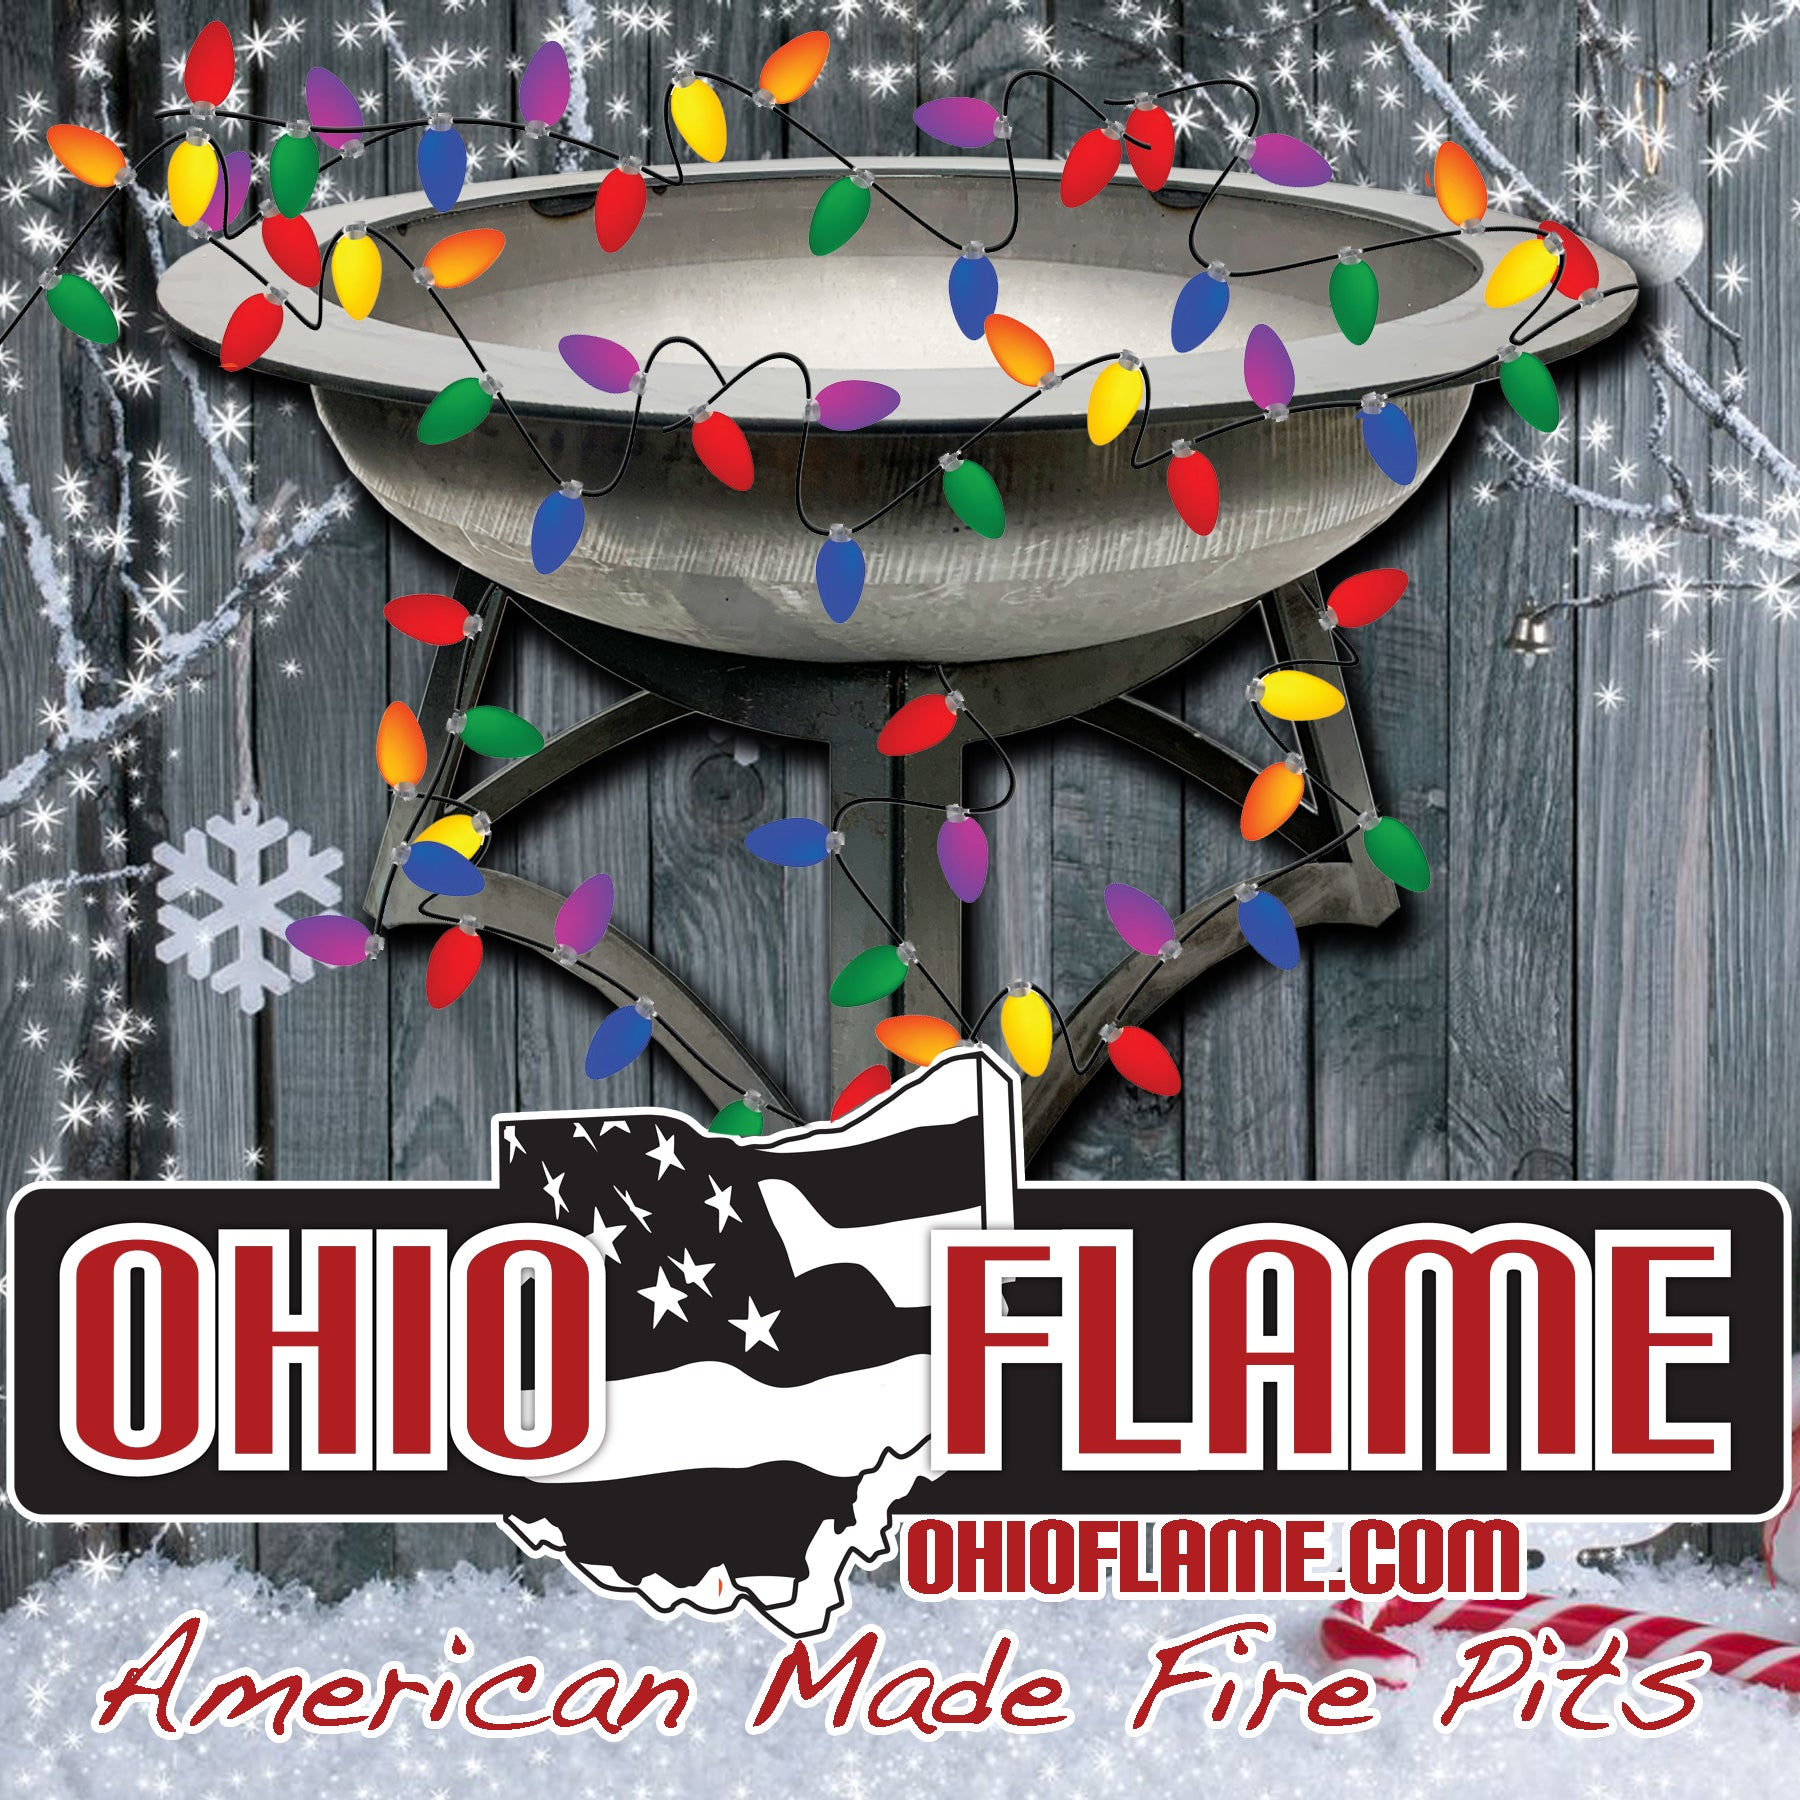 Holiday Deals at Ohio Flame